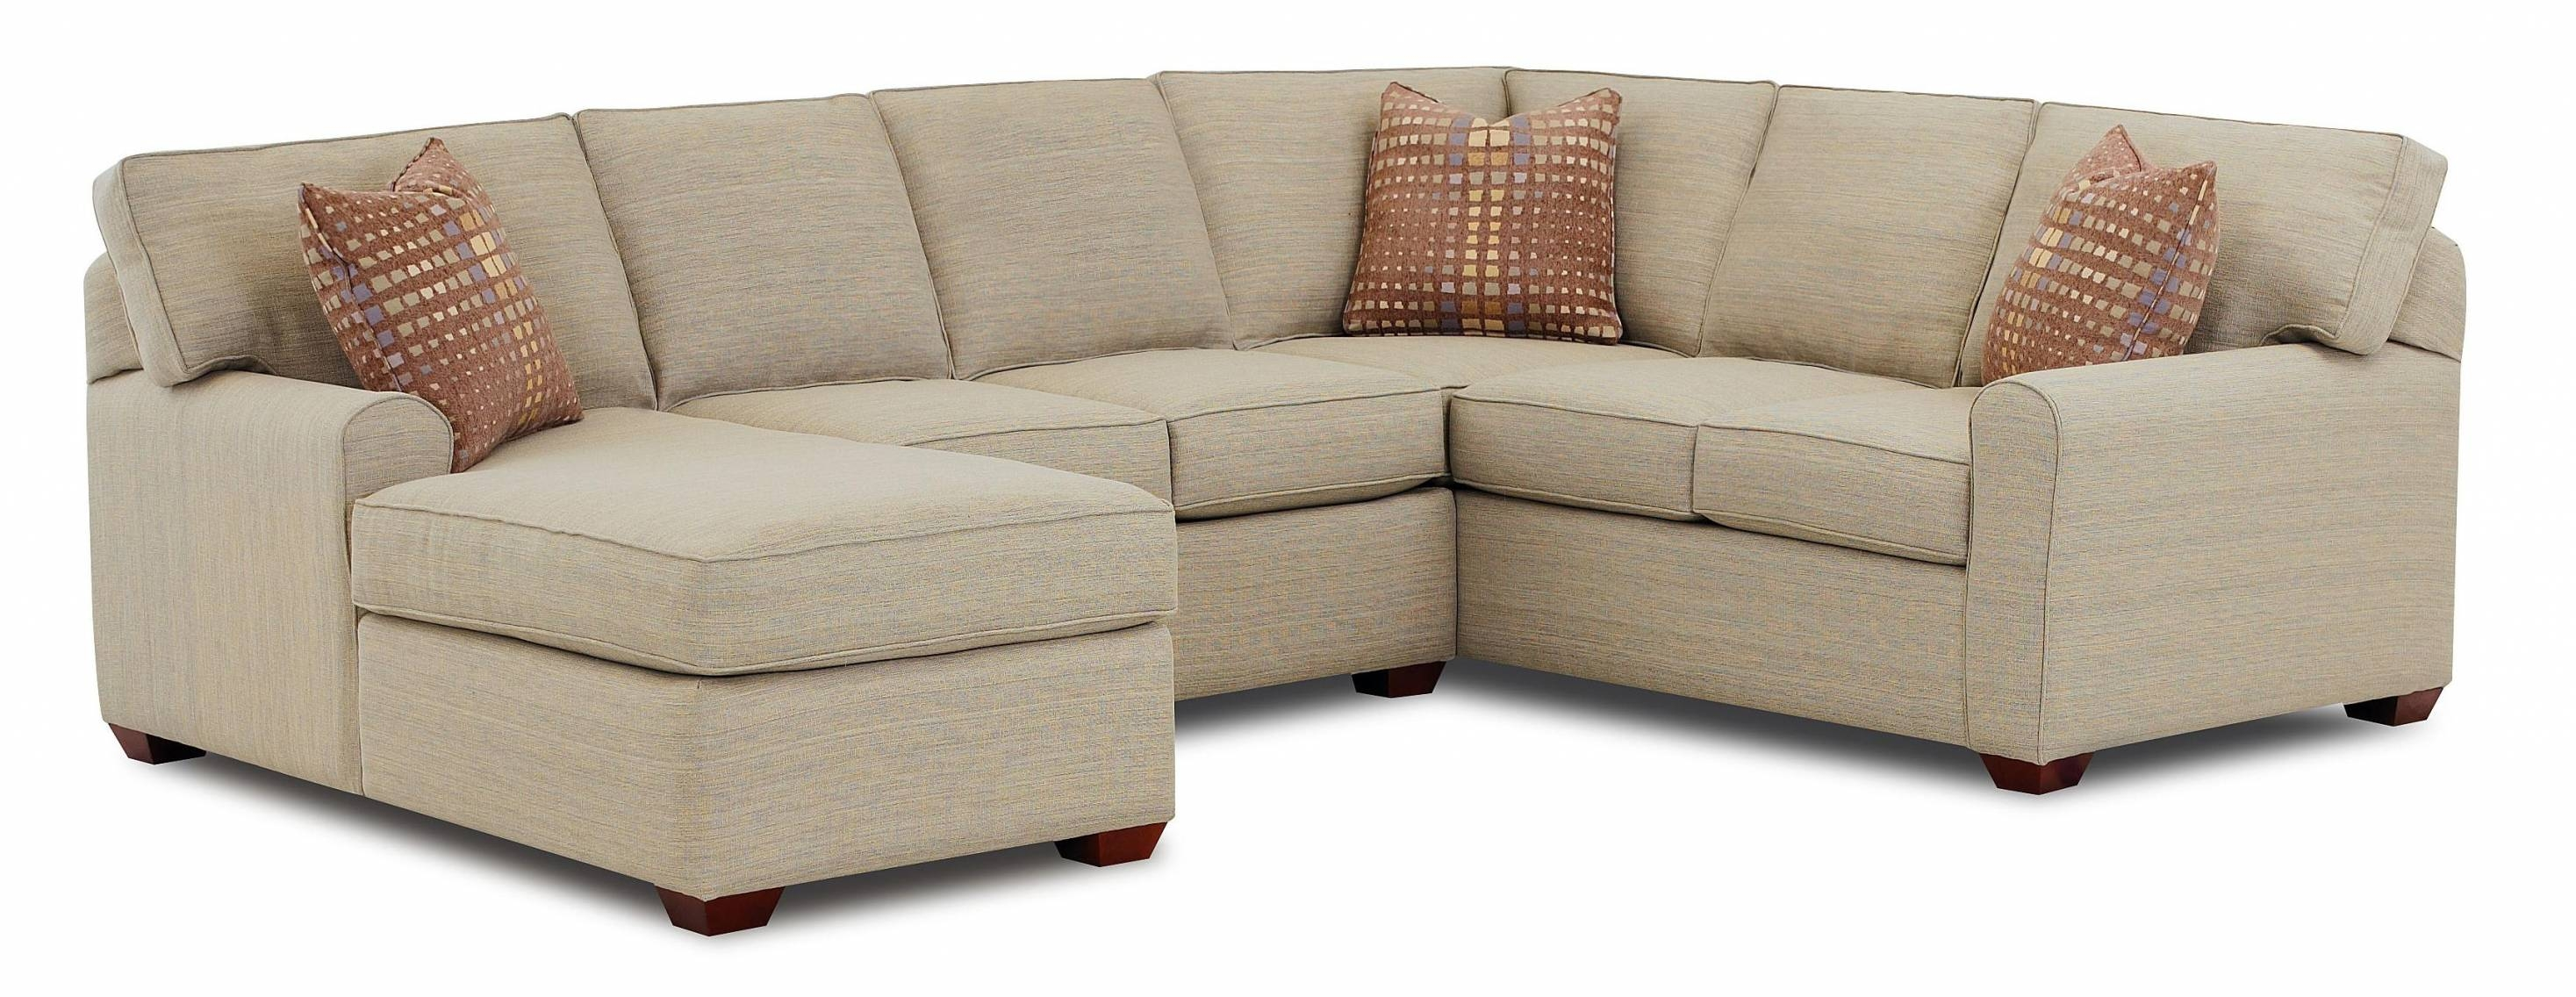 Berkline sectional sofa with chaise for Berkline chaise lounge